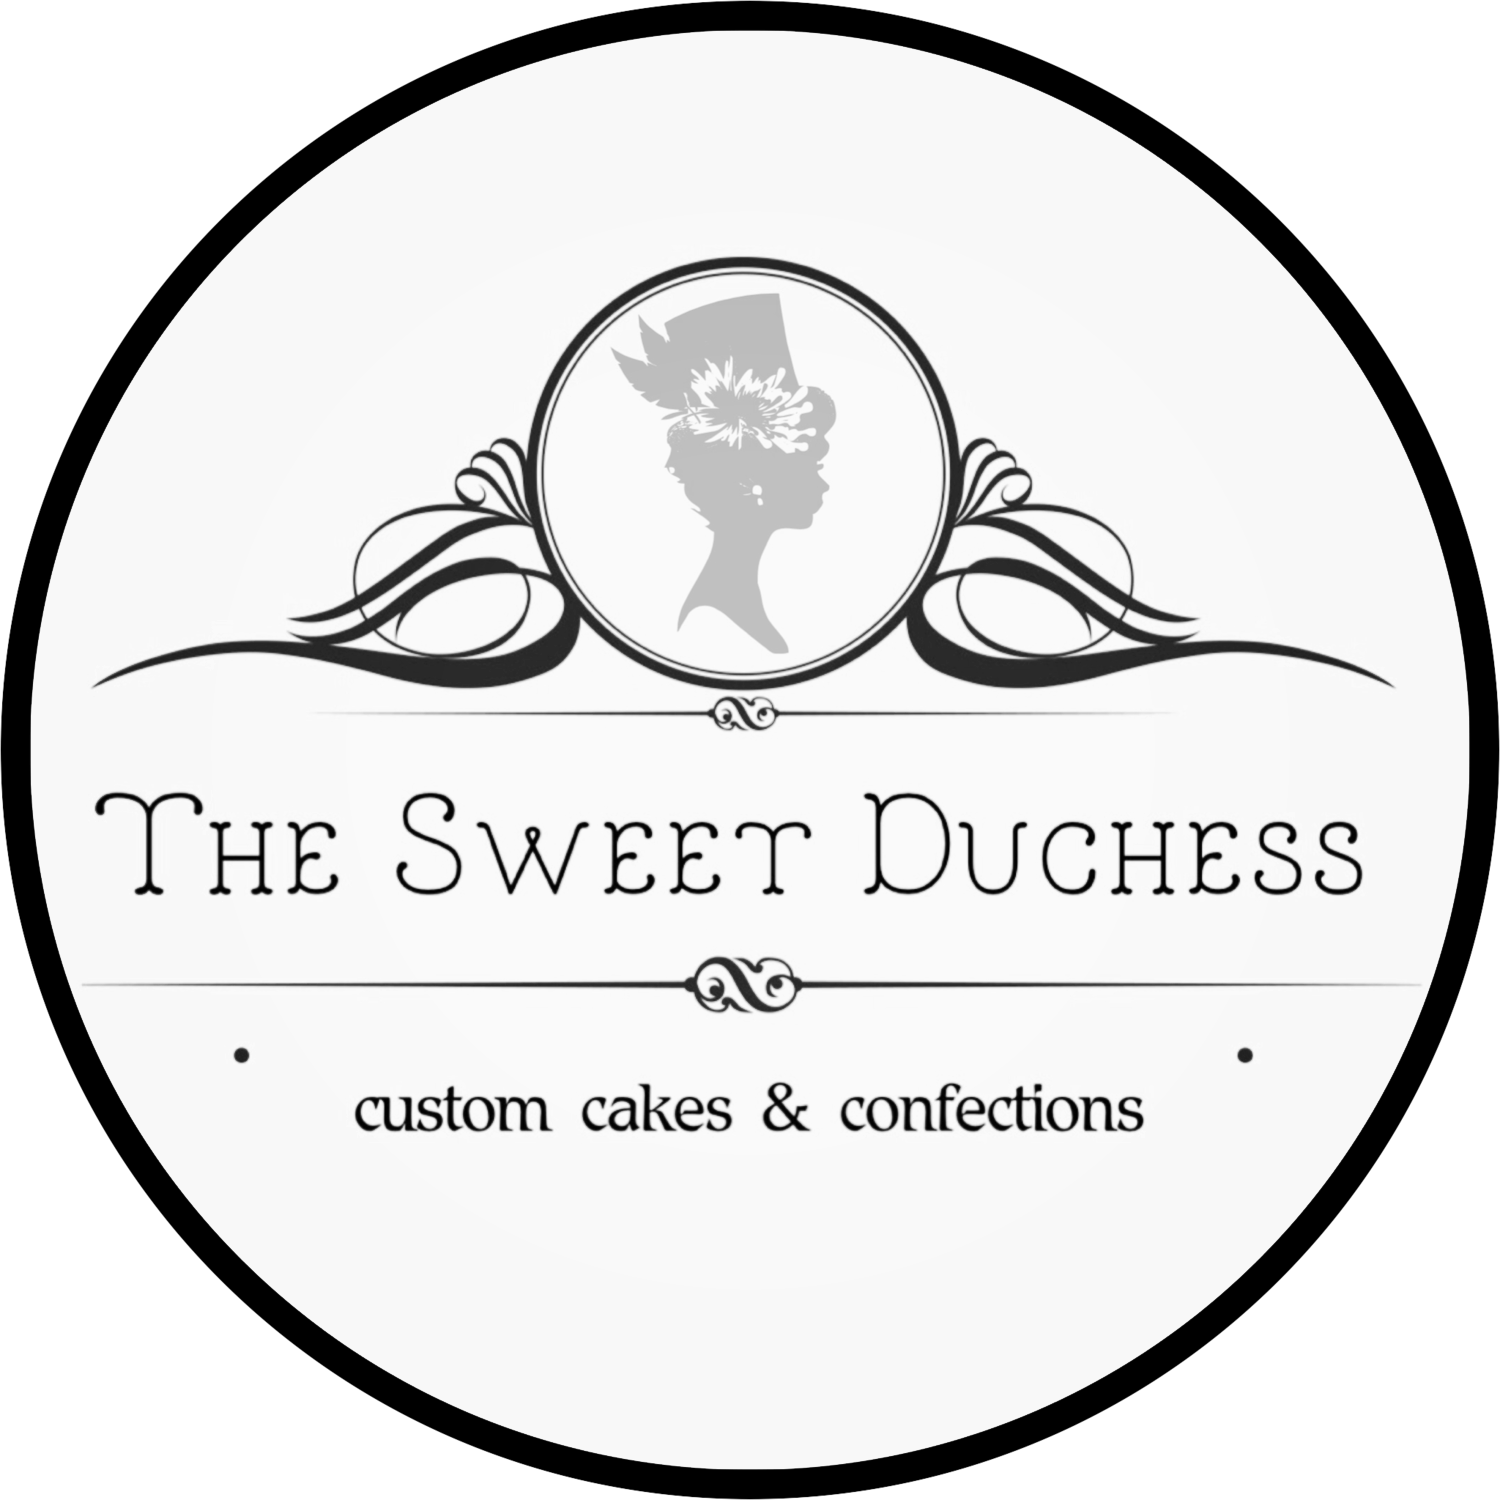 The Sweet Duchess